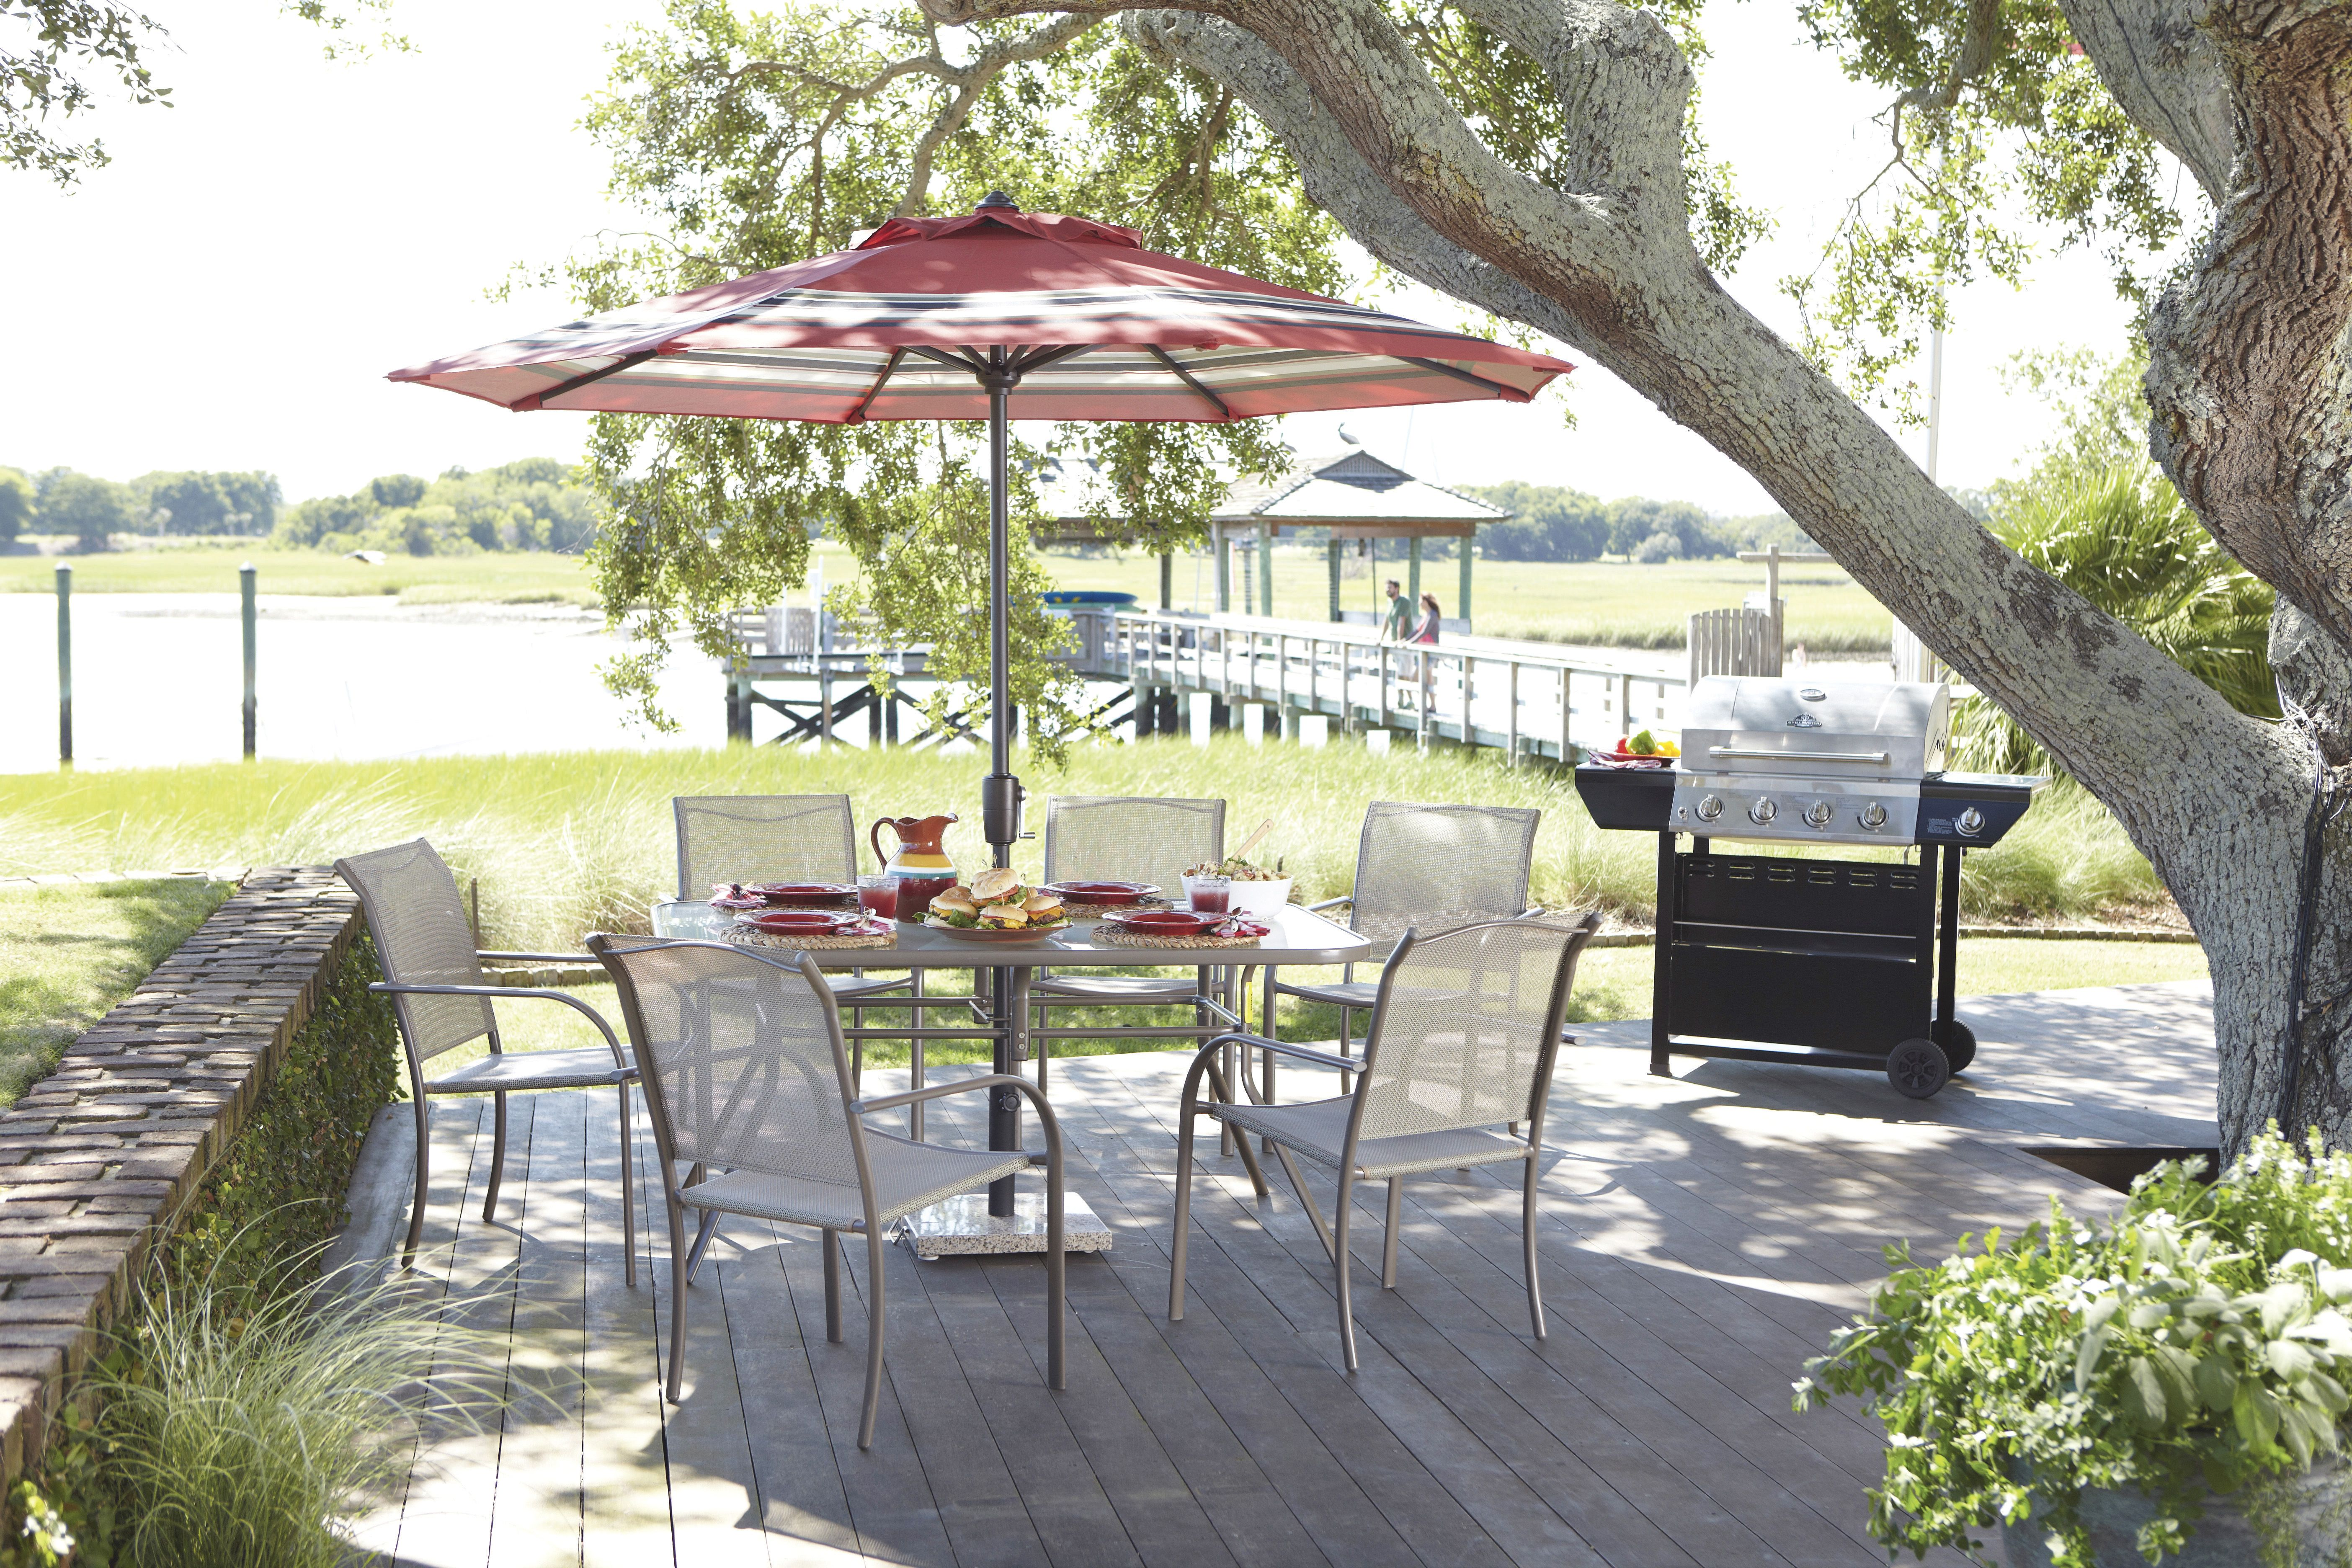 Add color to your patio set with festive umbrellas